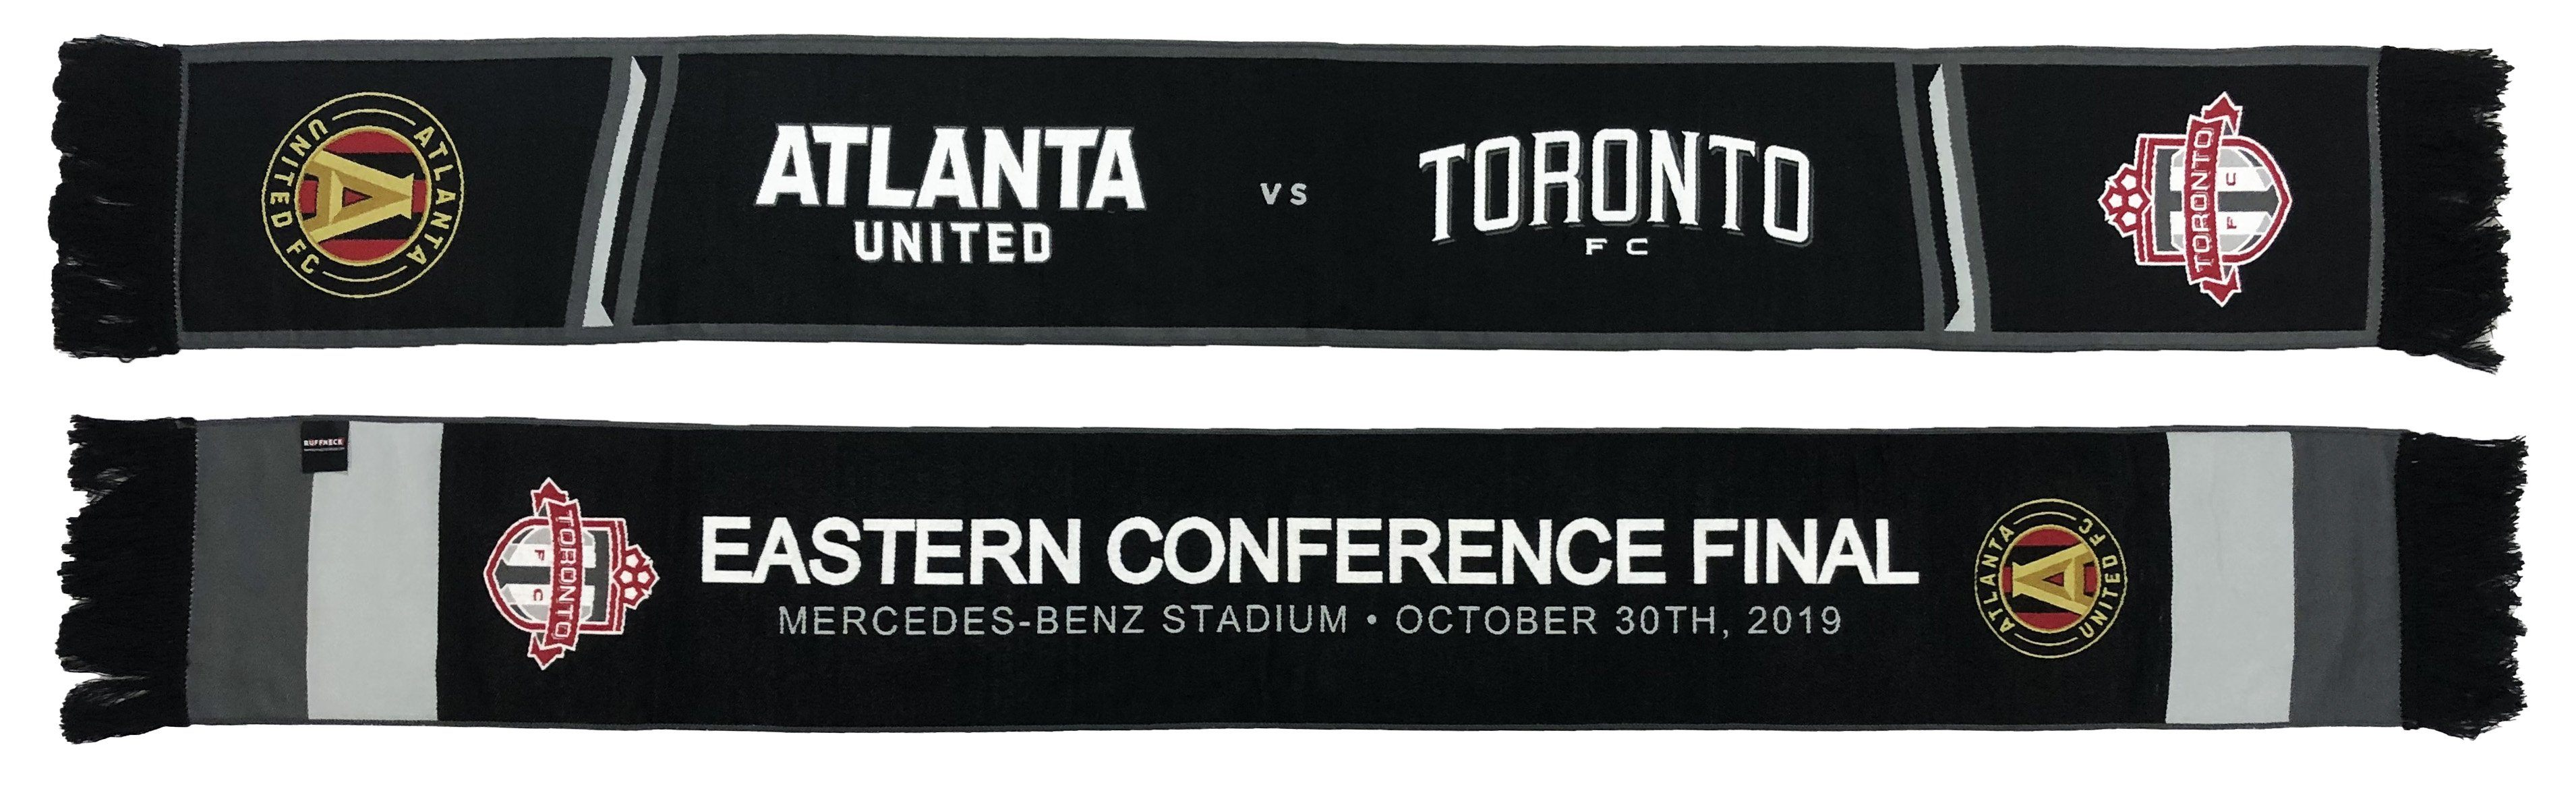 ATLANTA UNITED vs TORONTO FC - 2019 Eastern Conference Matchup Scarf (HD Woven)